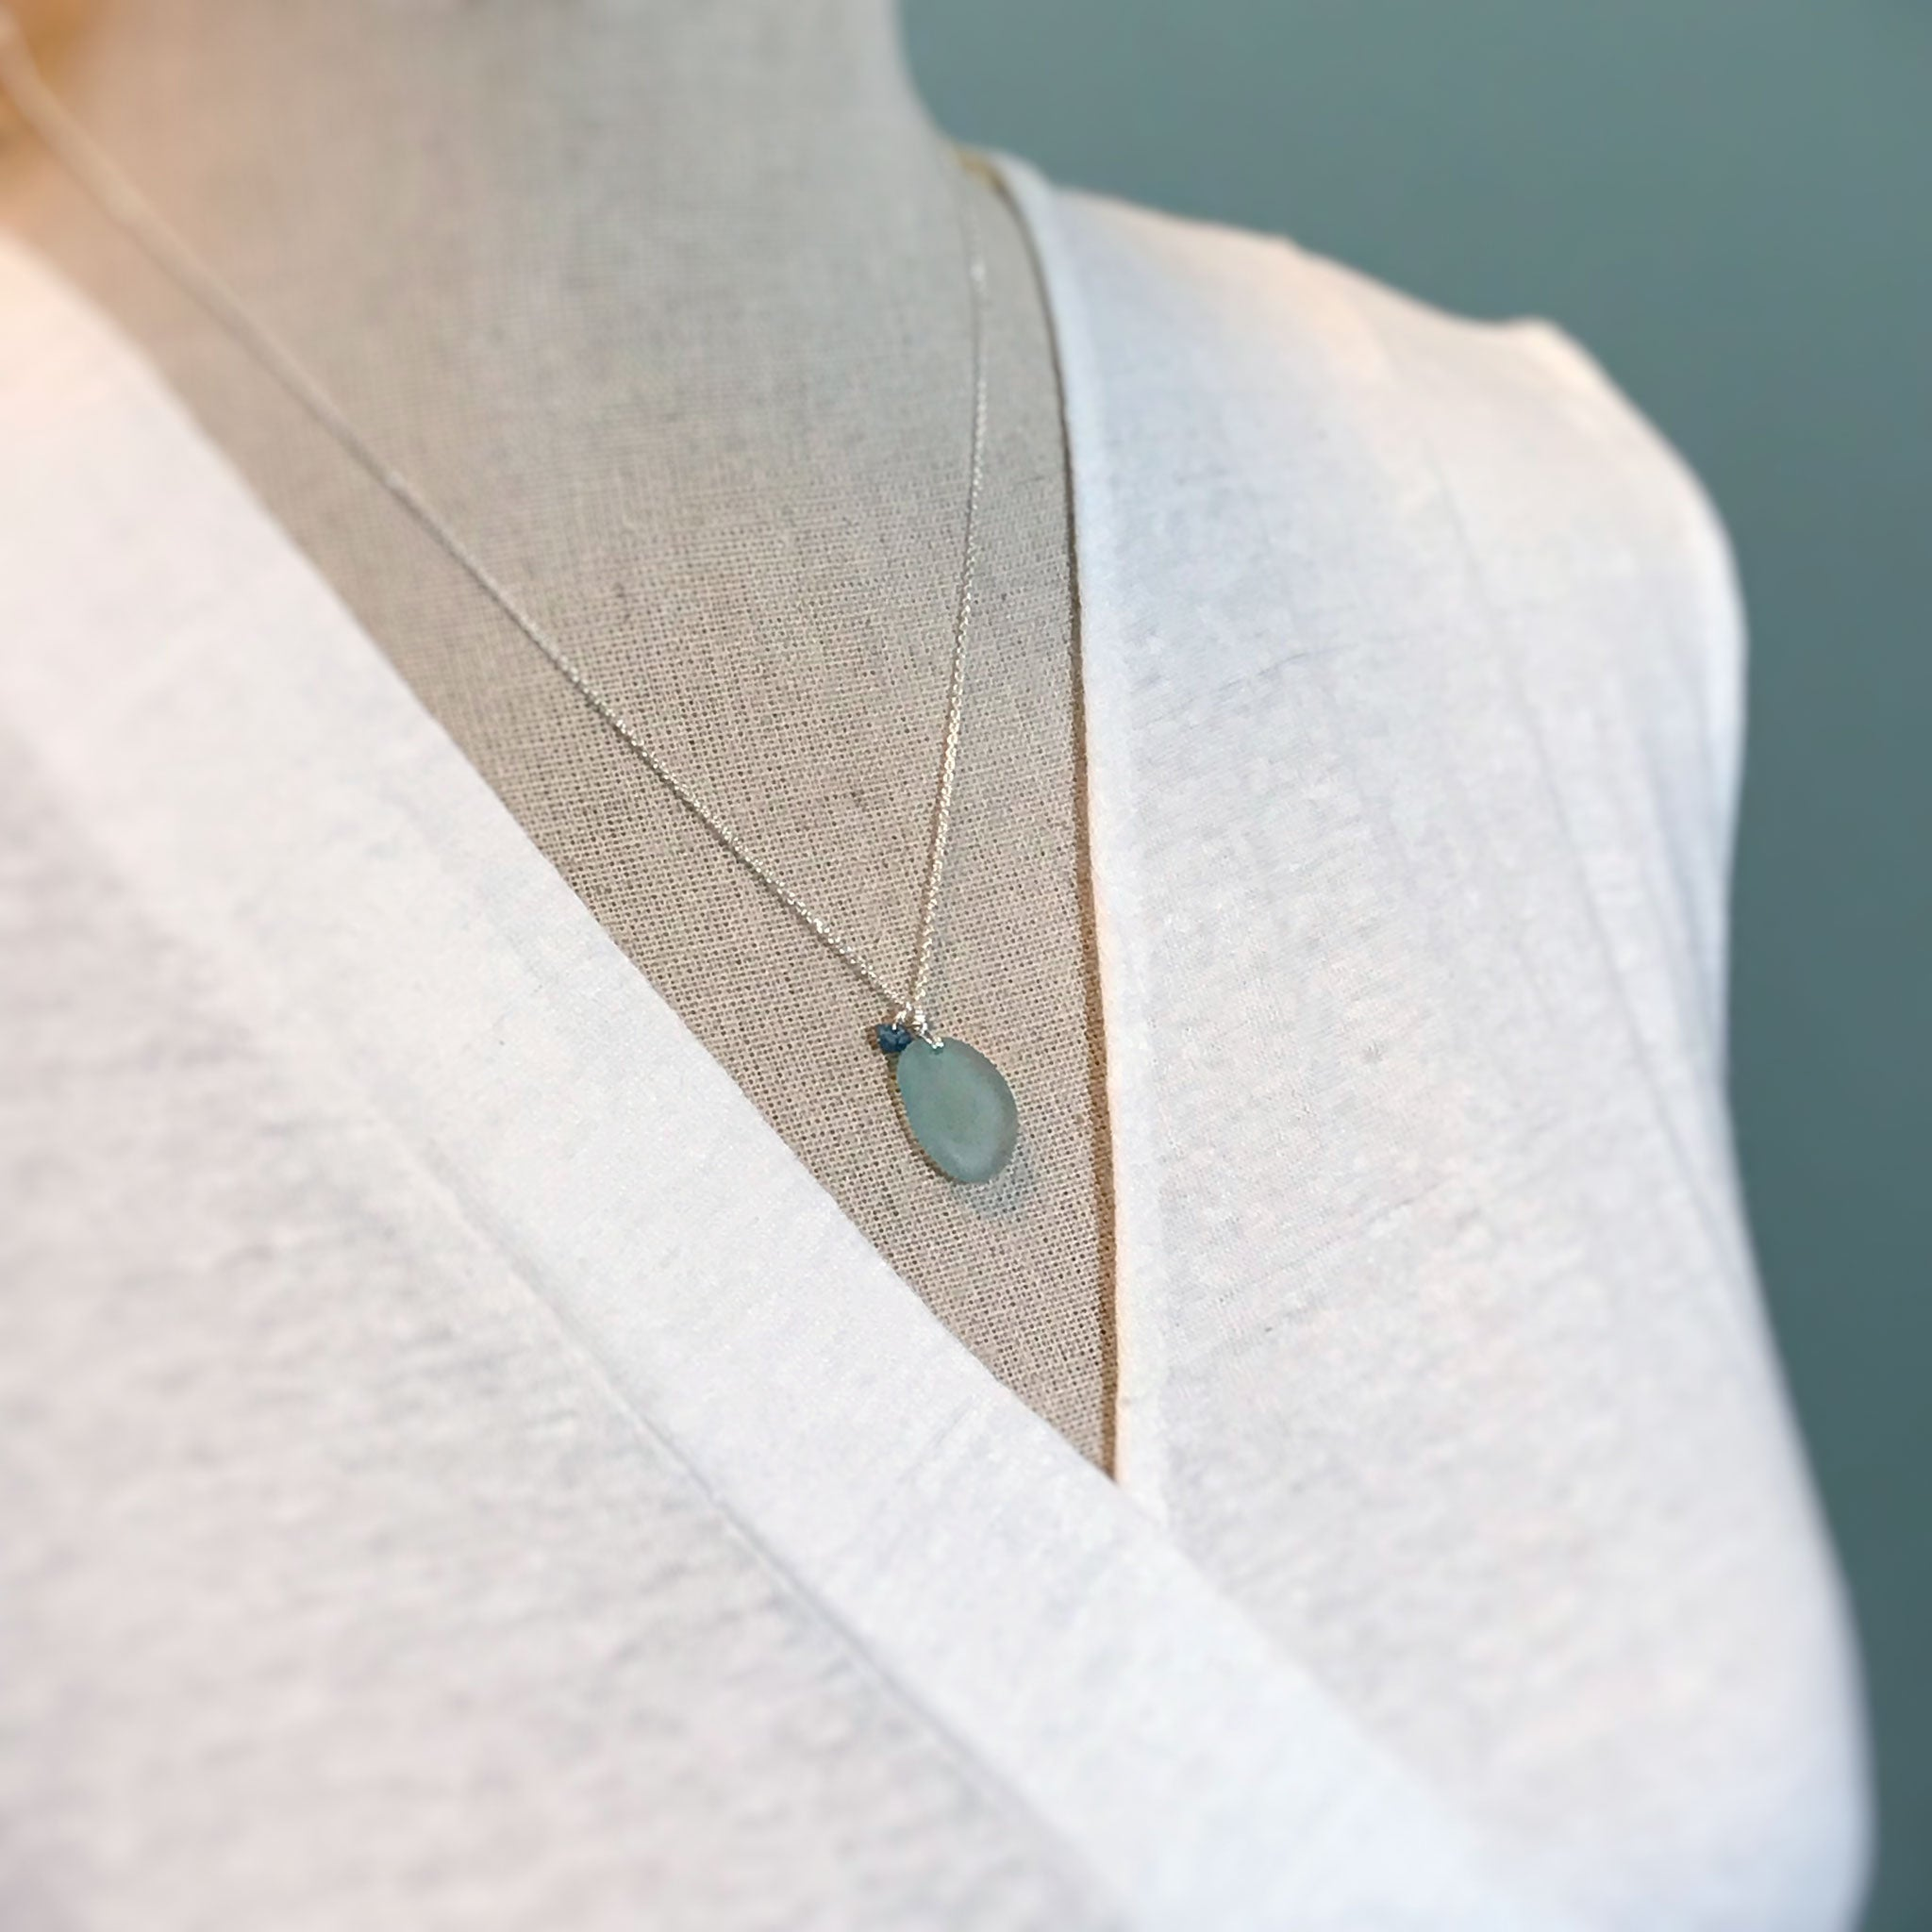 Aqua Seaglass on sterling silver chain with Blue Rough-cut Diamond - kriket-broadhurst Seaglass jewellery